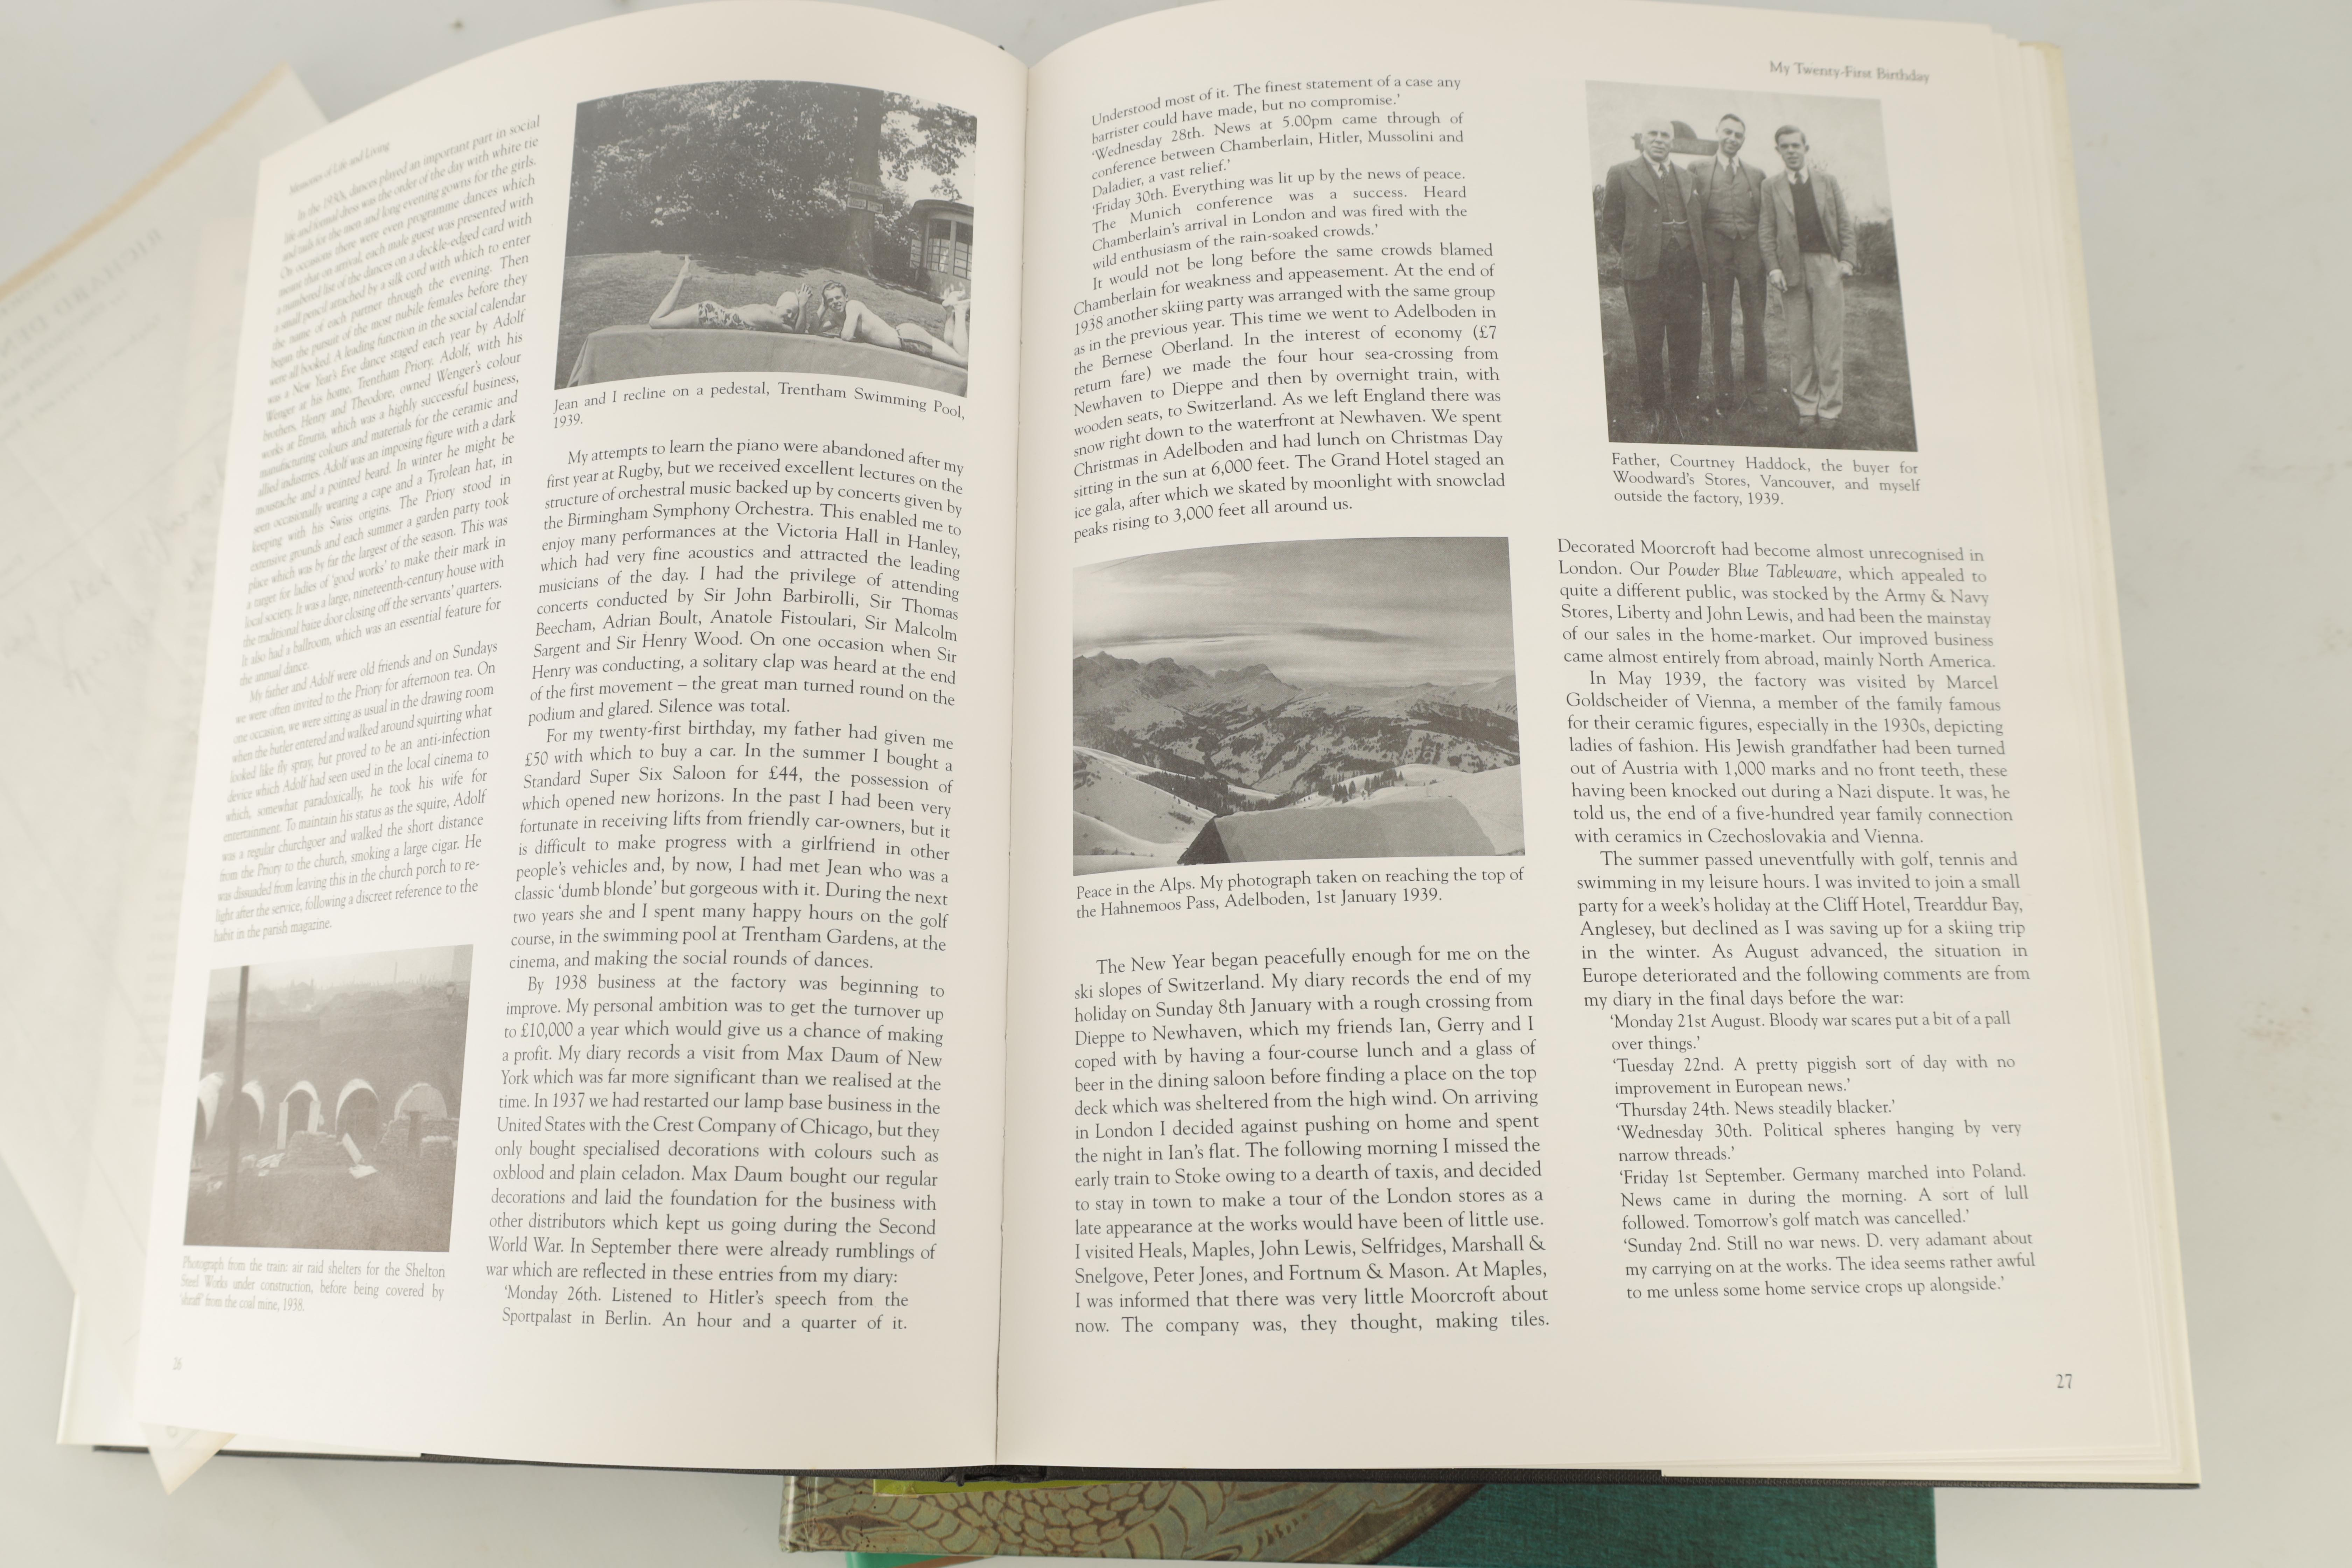 A COLLECTION OF EIGHT CERAMIC REFERENCE BOOKS including Poole pottery by Lesley Haward edited by - Image 6 of 9